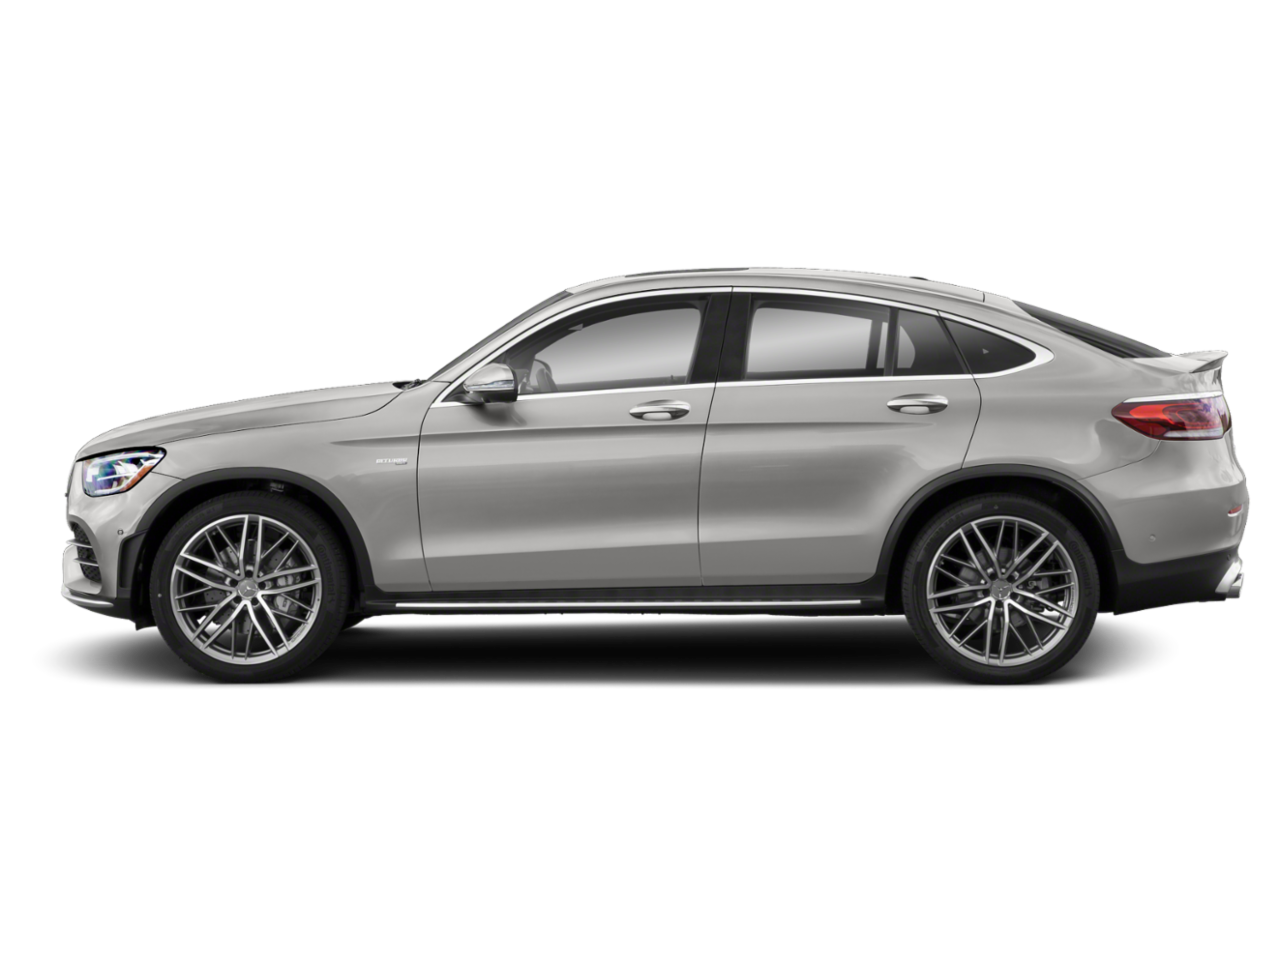 2021 Mercedes-Benz AMG GLC 43 4MATIC Coupe